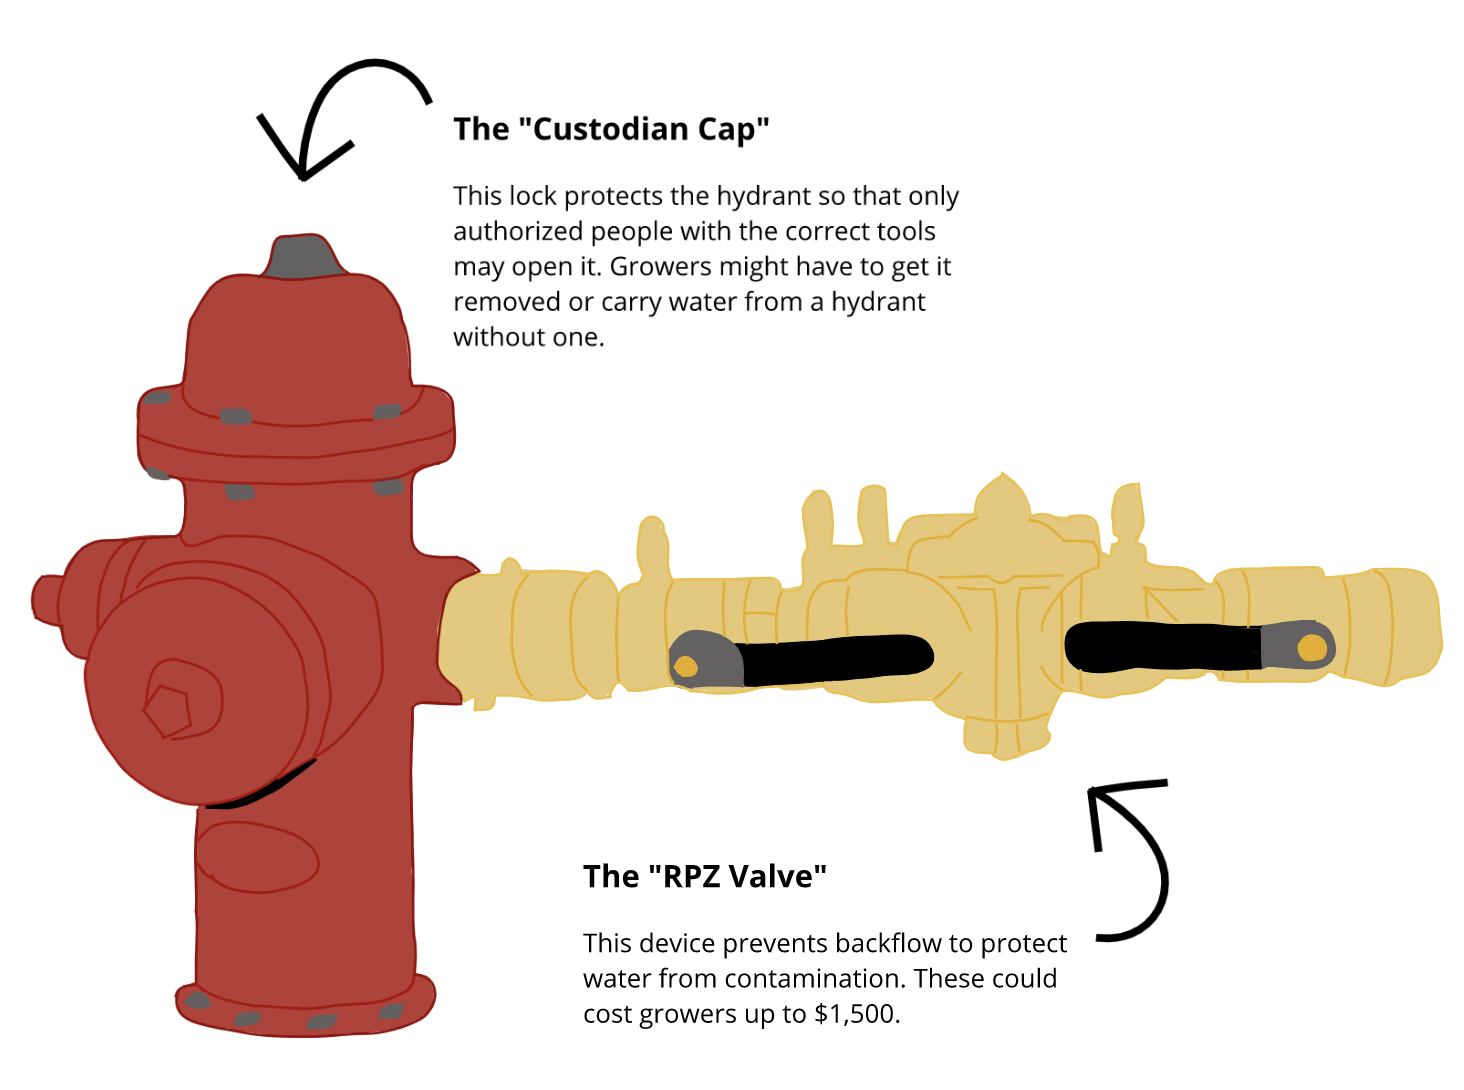 A graphic — a custodian cap on top of a fire hydrant can prevent growers from accessing it. The RPZ valve, required under the hydrant permit policy, is a device meant to prevent backflow and protect water from contamination. This, including installation and other costs, could carry a $1,500 price tag.